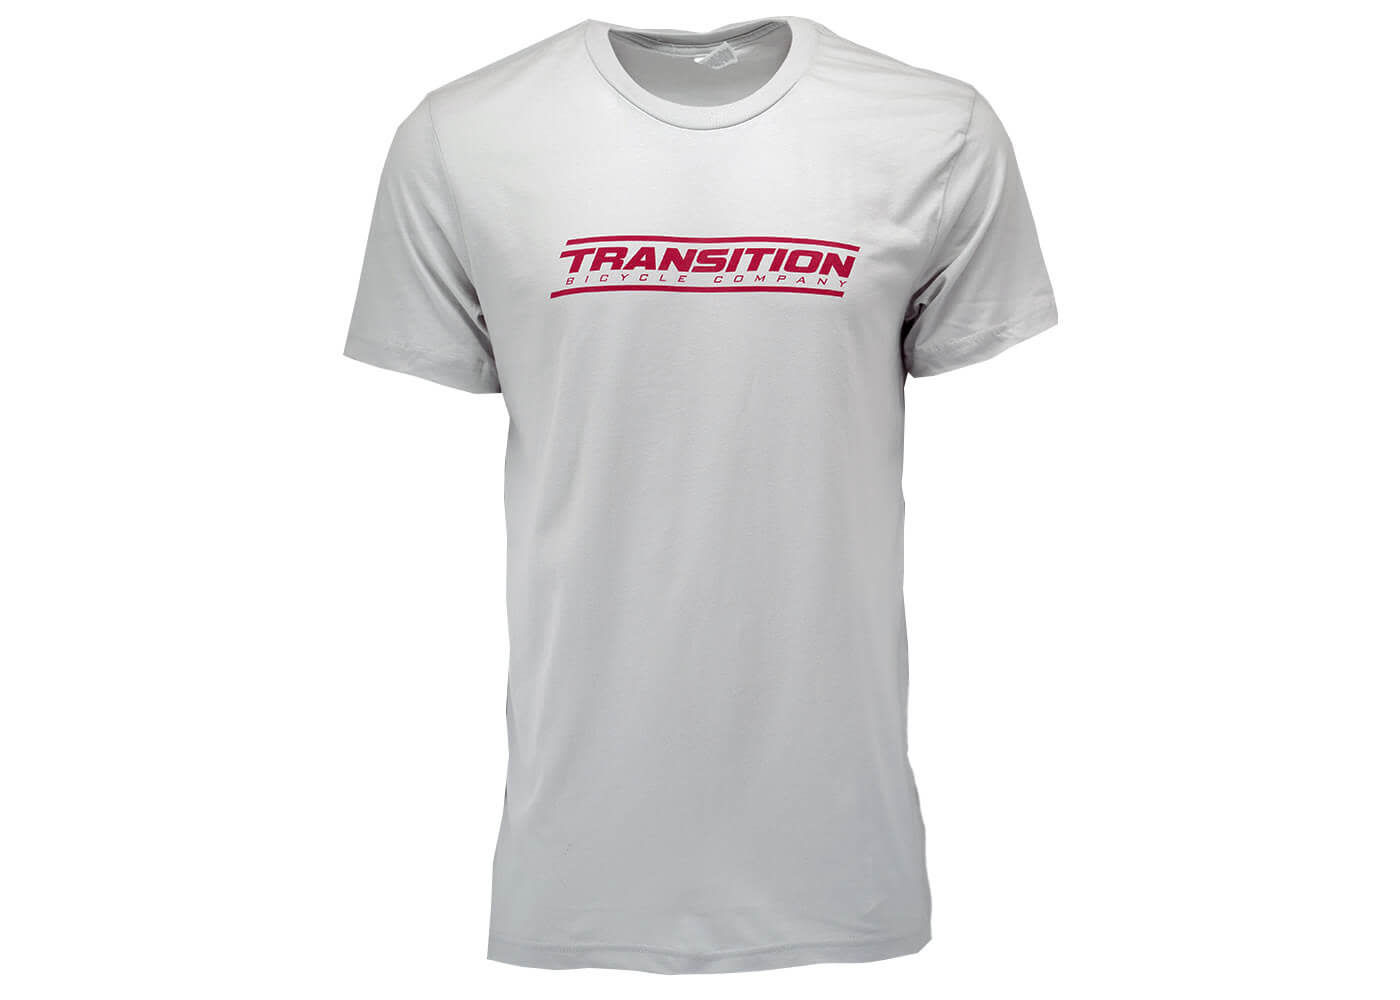 Transition T-Shirt: Transition Logo (Silver & Red XX-Large)